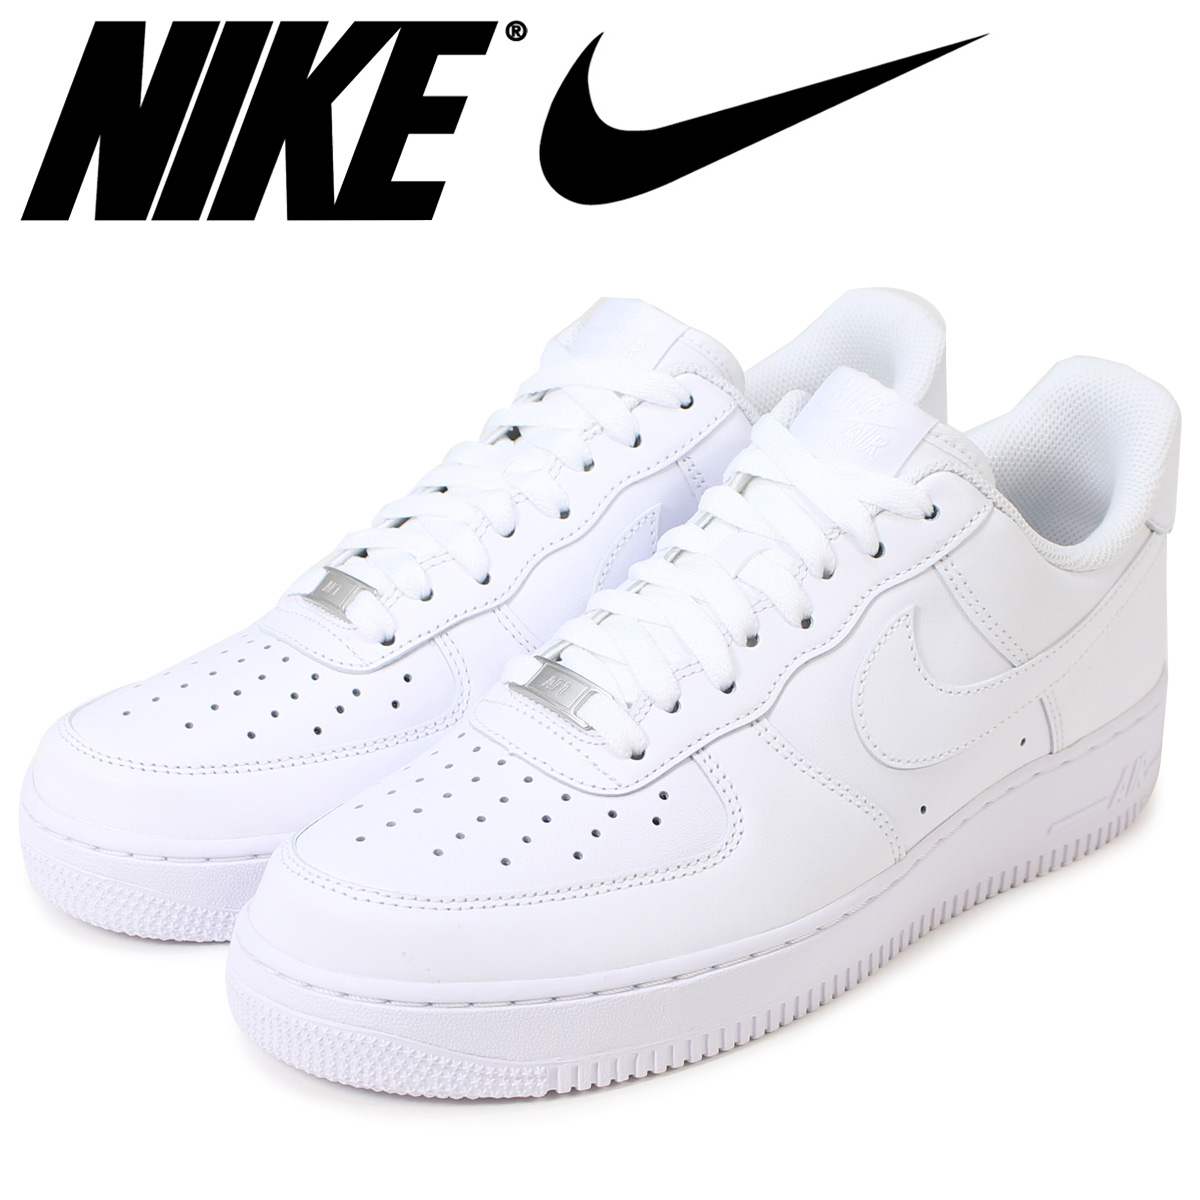 b245c285c764 NIKE Nike Air Force sneakers AIR FORCE 1 LOW 07 air force 1 low 315122 -  111 men s women s shoes white  8 2 Add in stock